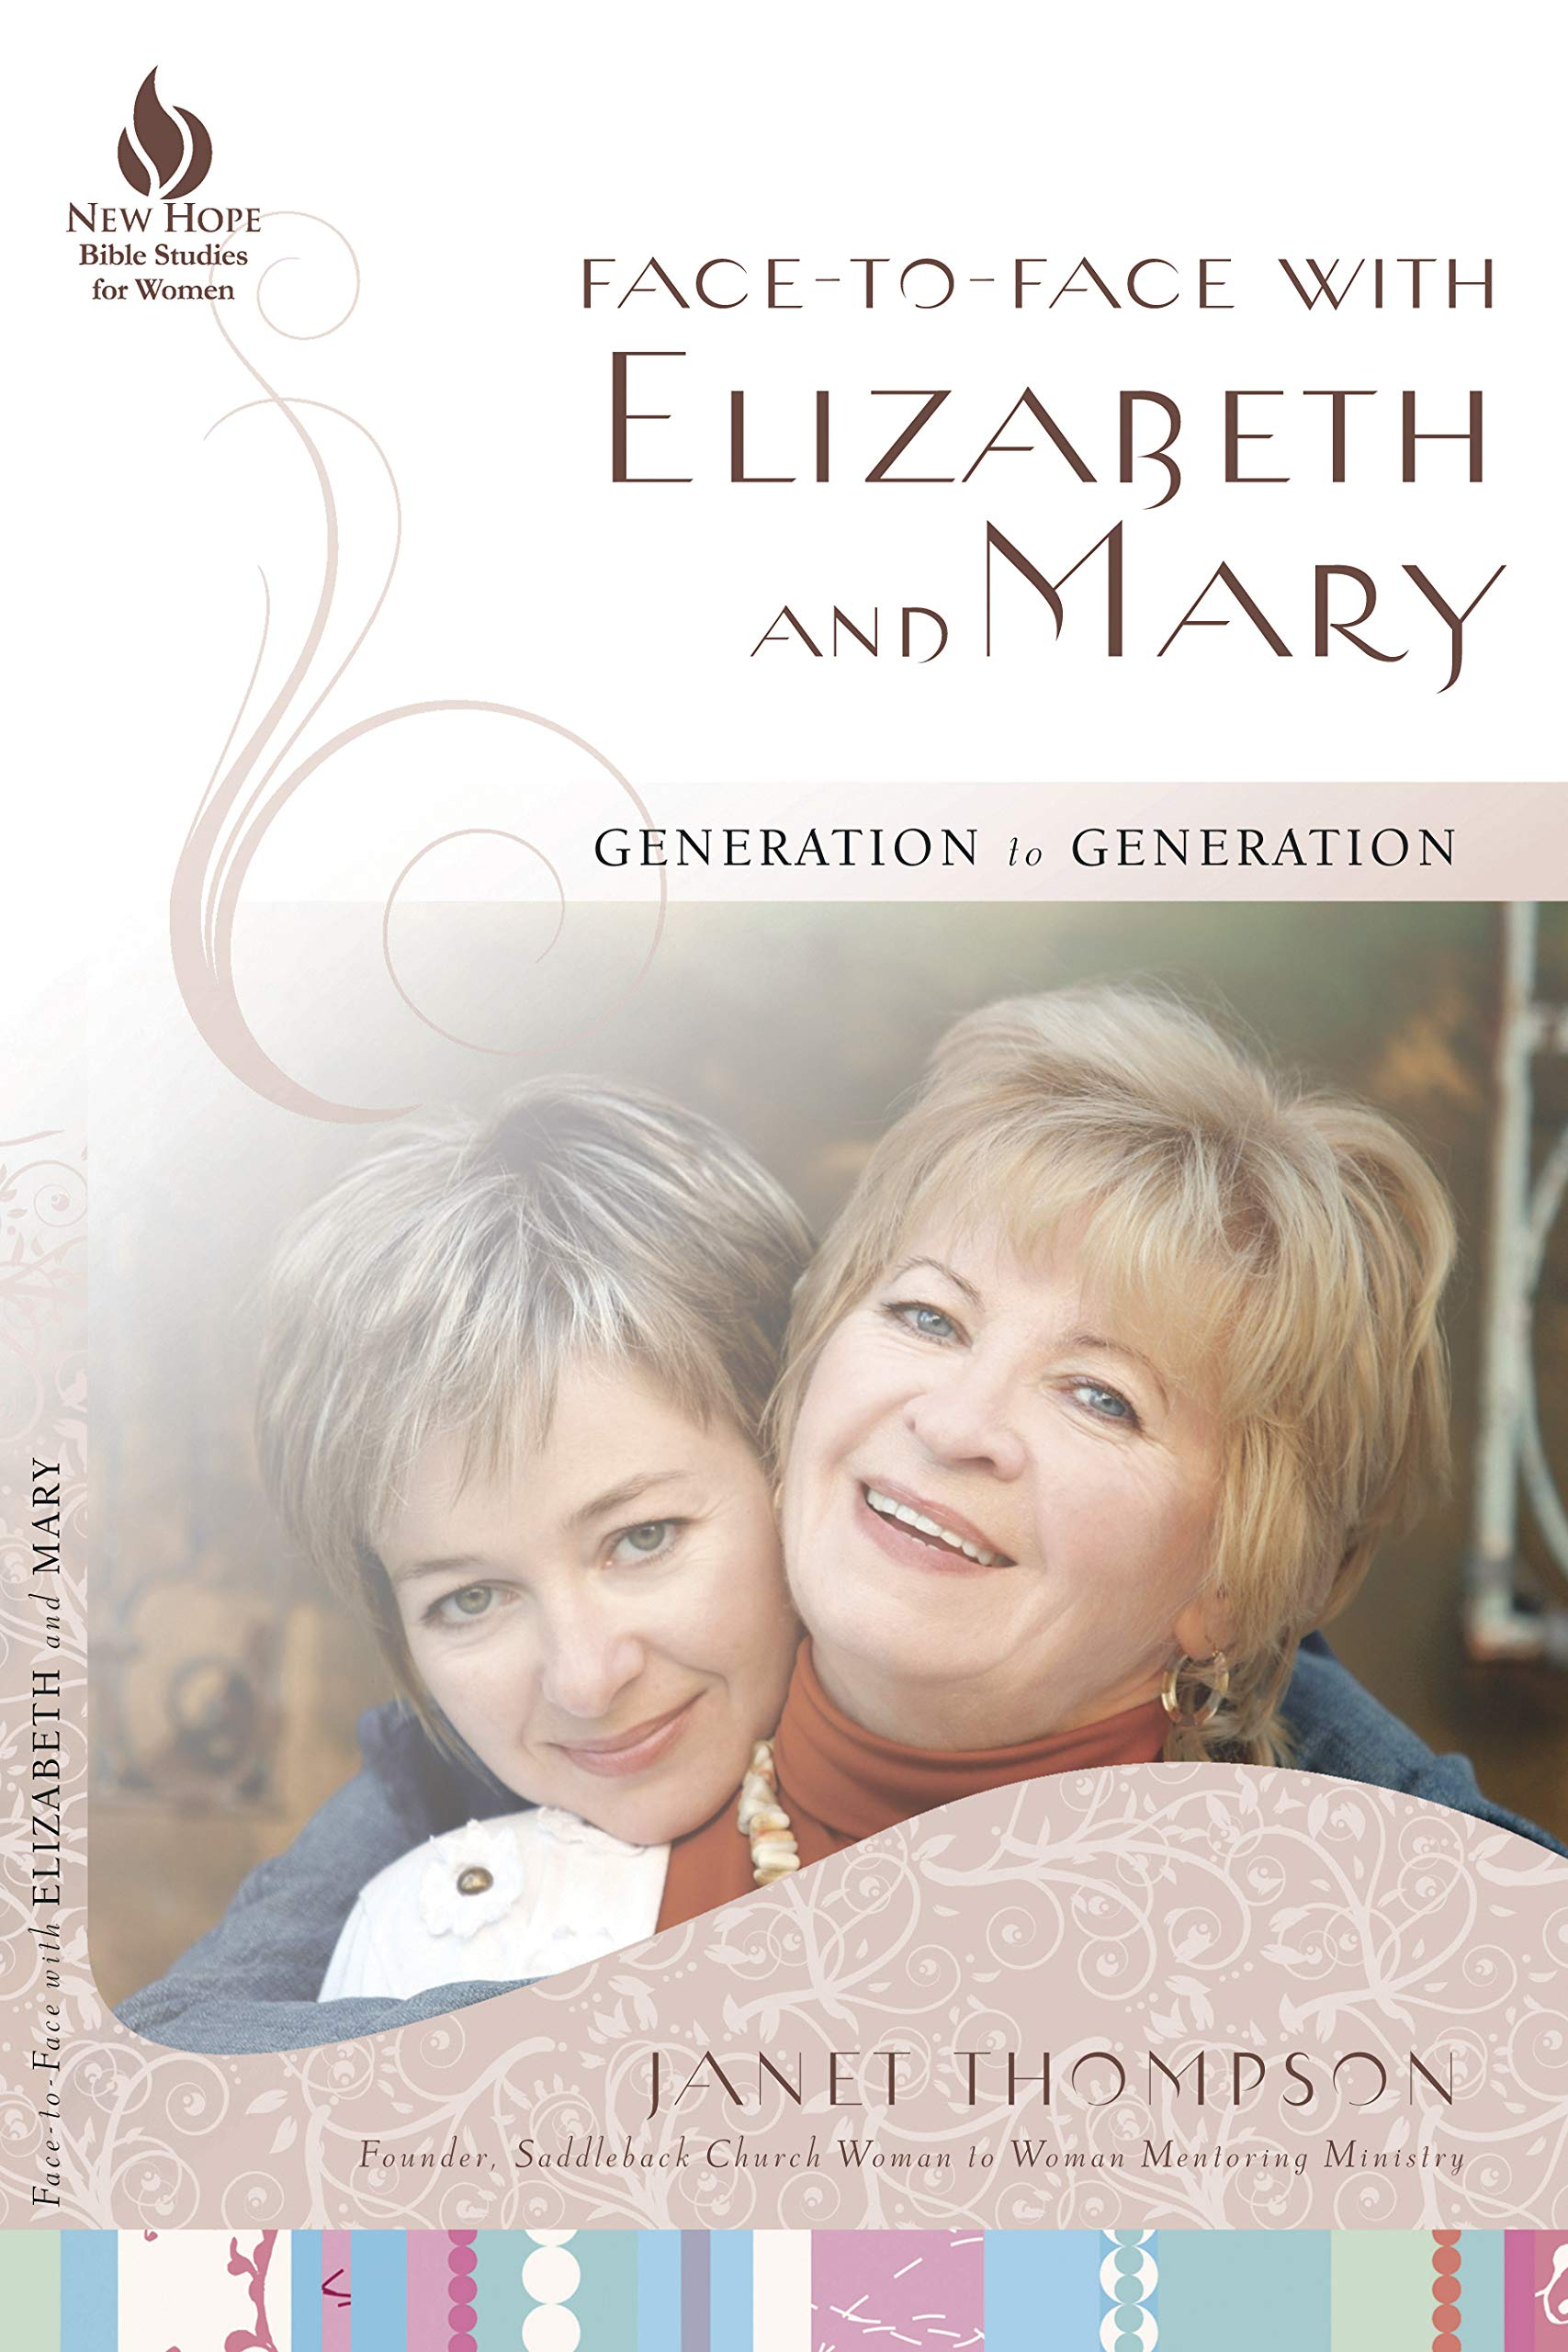 Face-to-Face with Elizabeth and Mary: Generation to Generation (New Hope Bible Studies for Women)